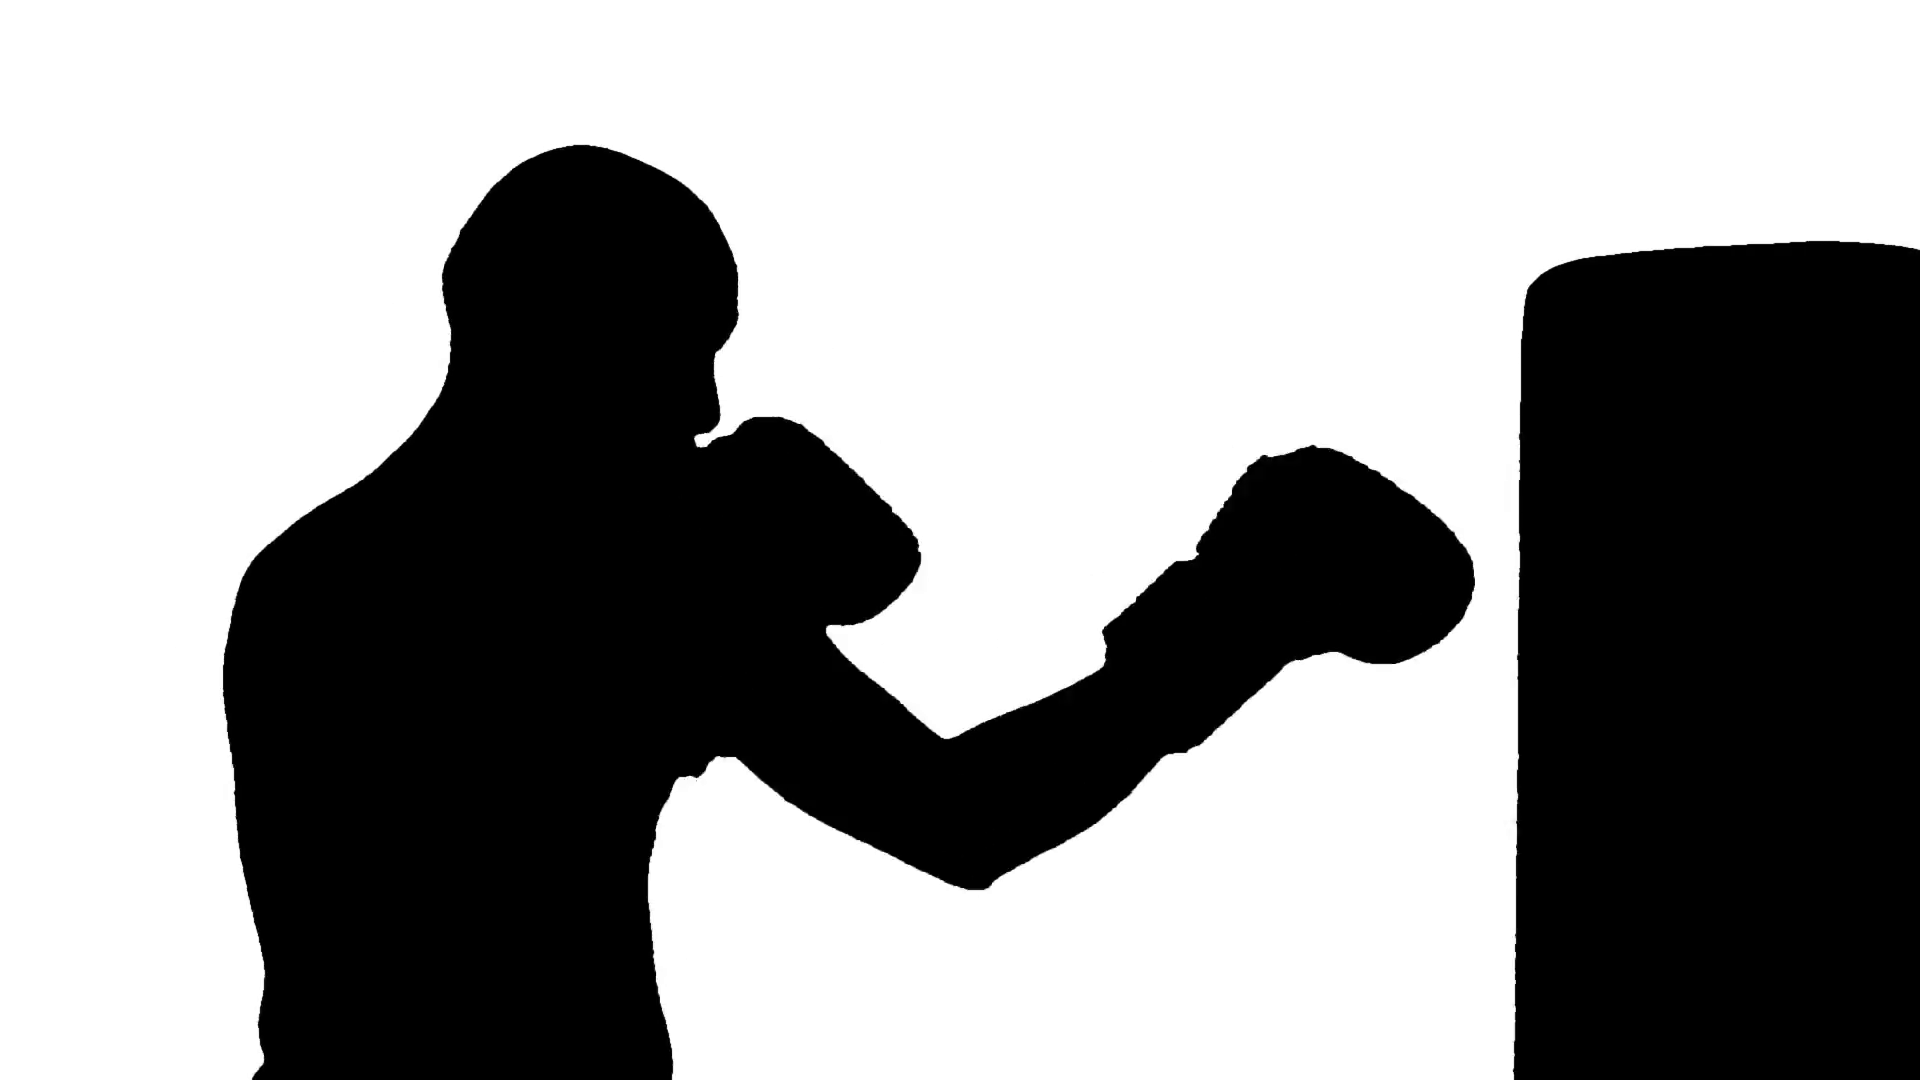 1920x1080 Hd Rotoscoped Silhouette Of Bald Male Boxer Working Out On